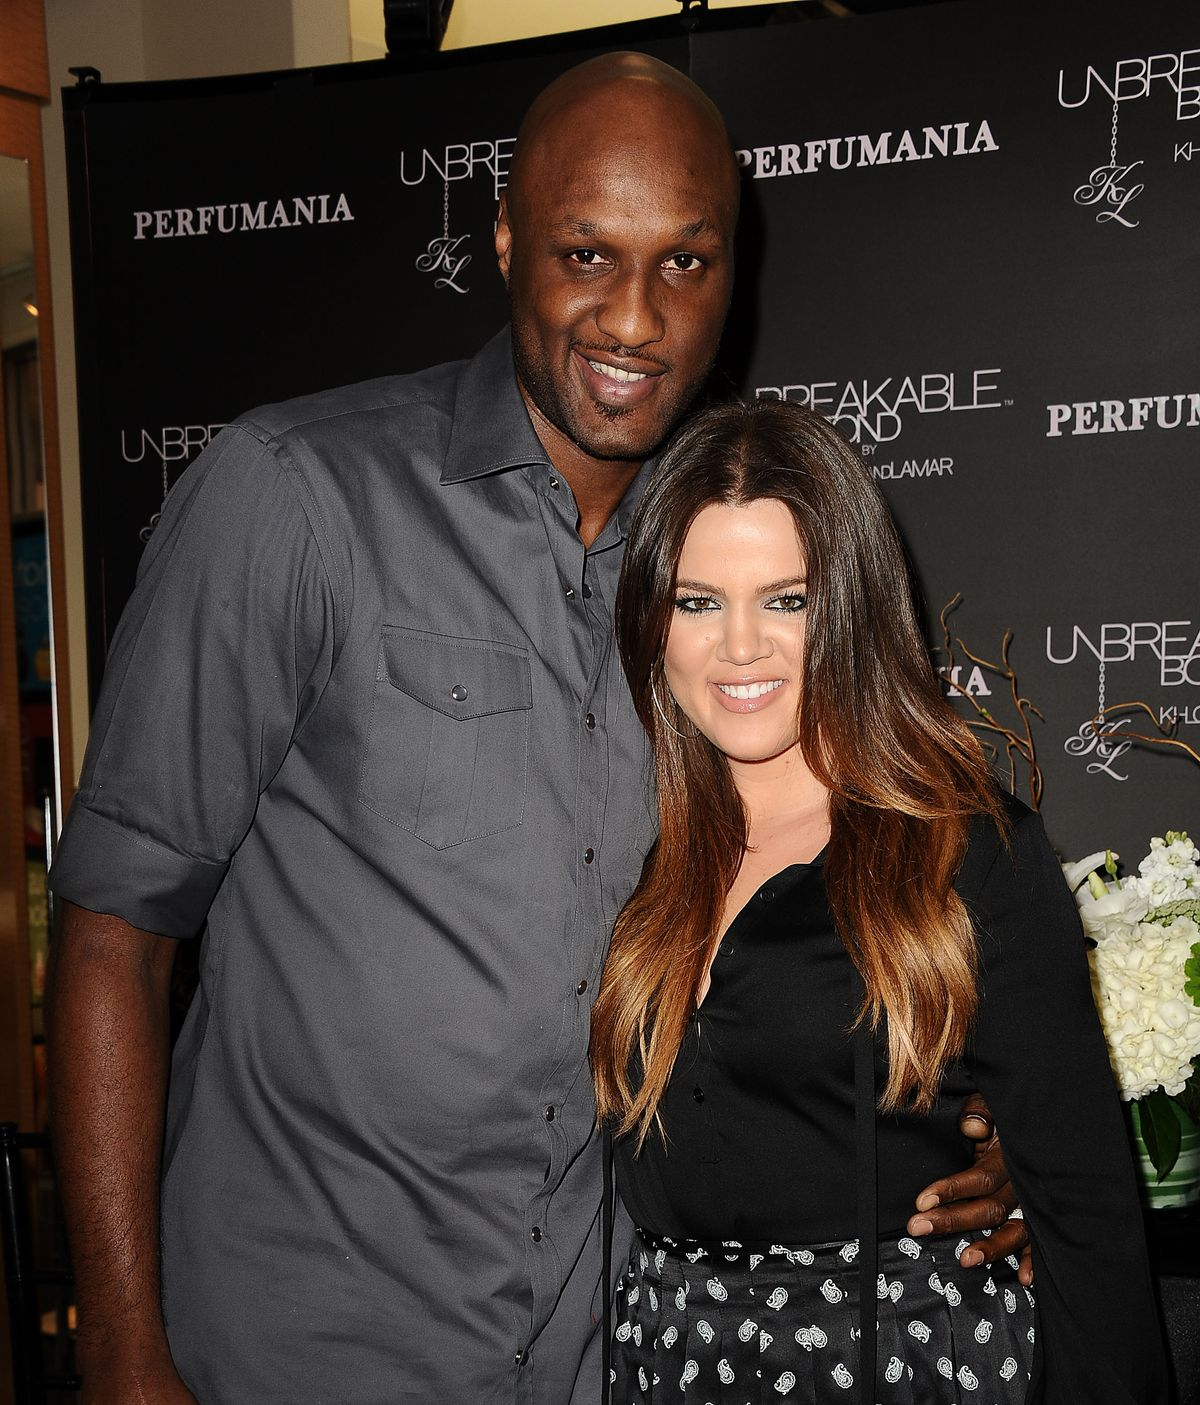 Khloe dating after divorce